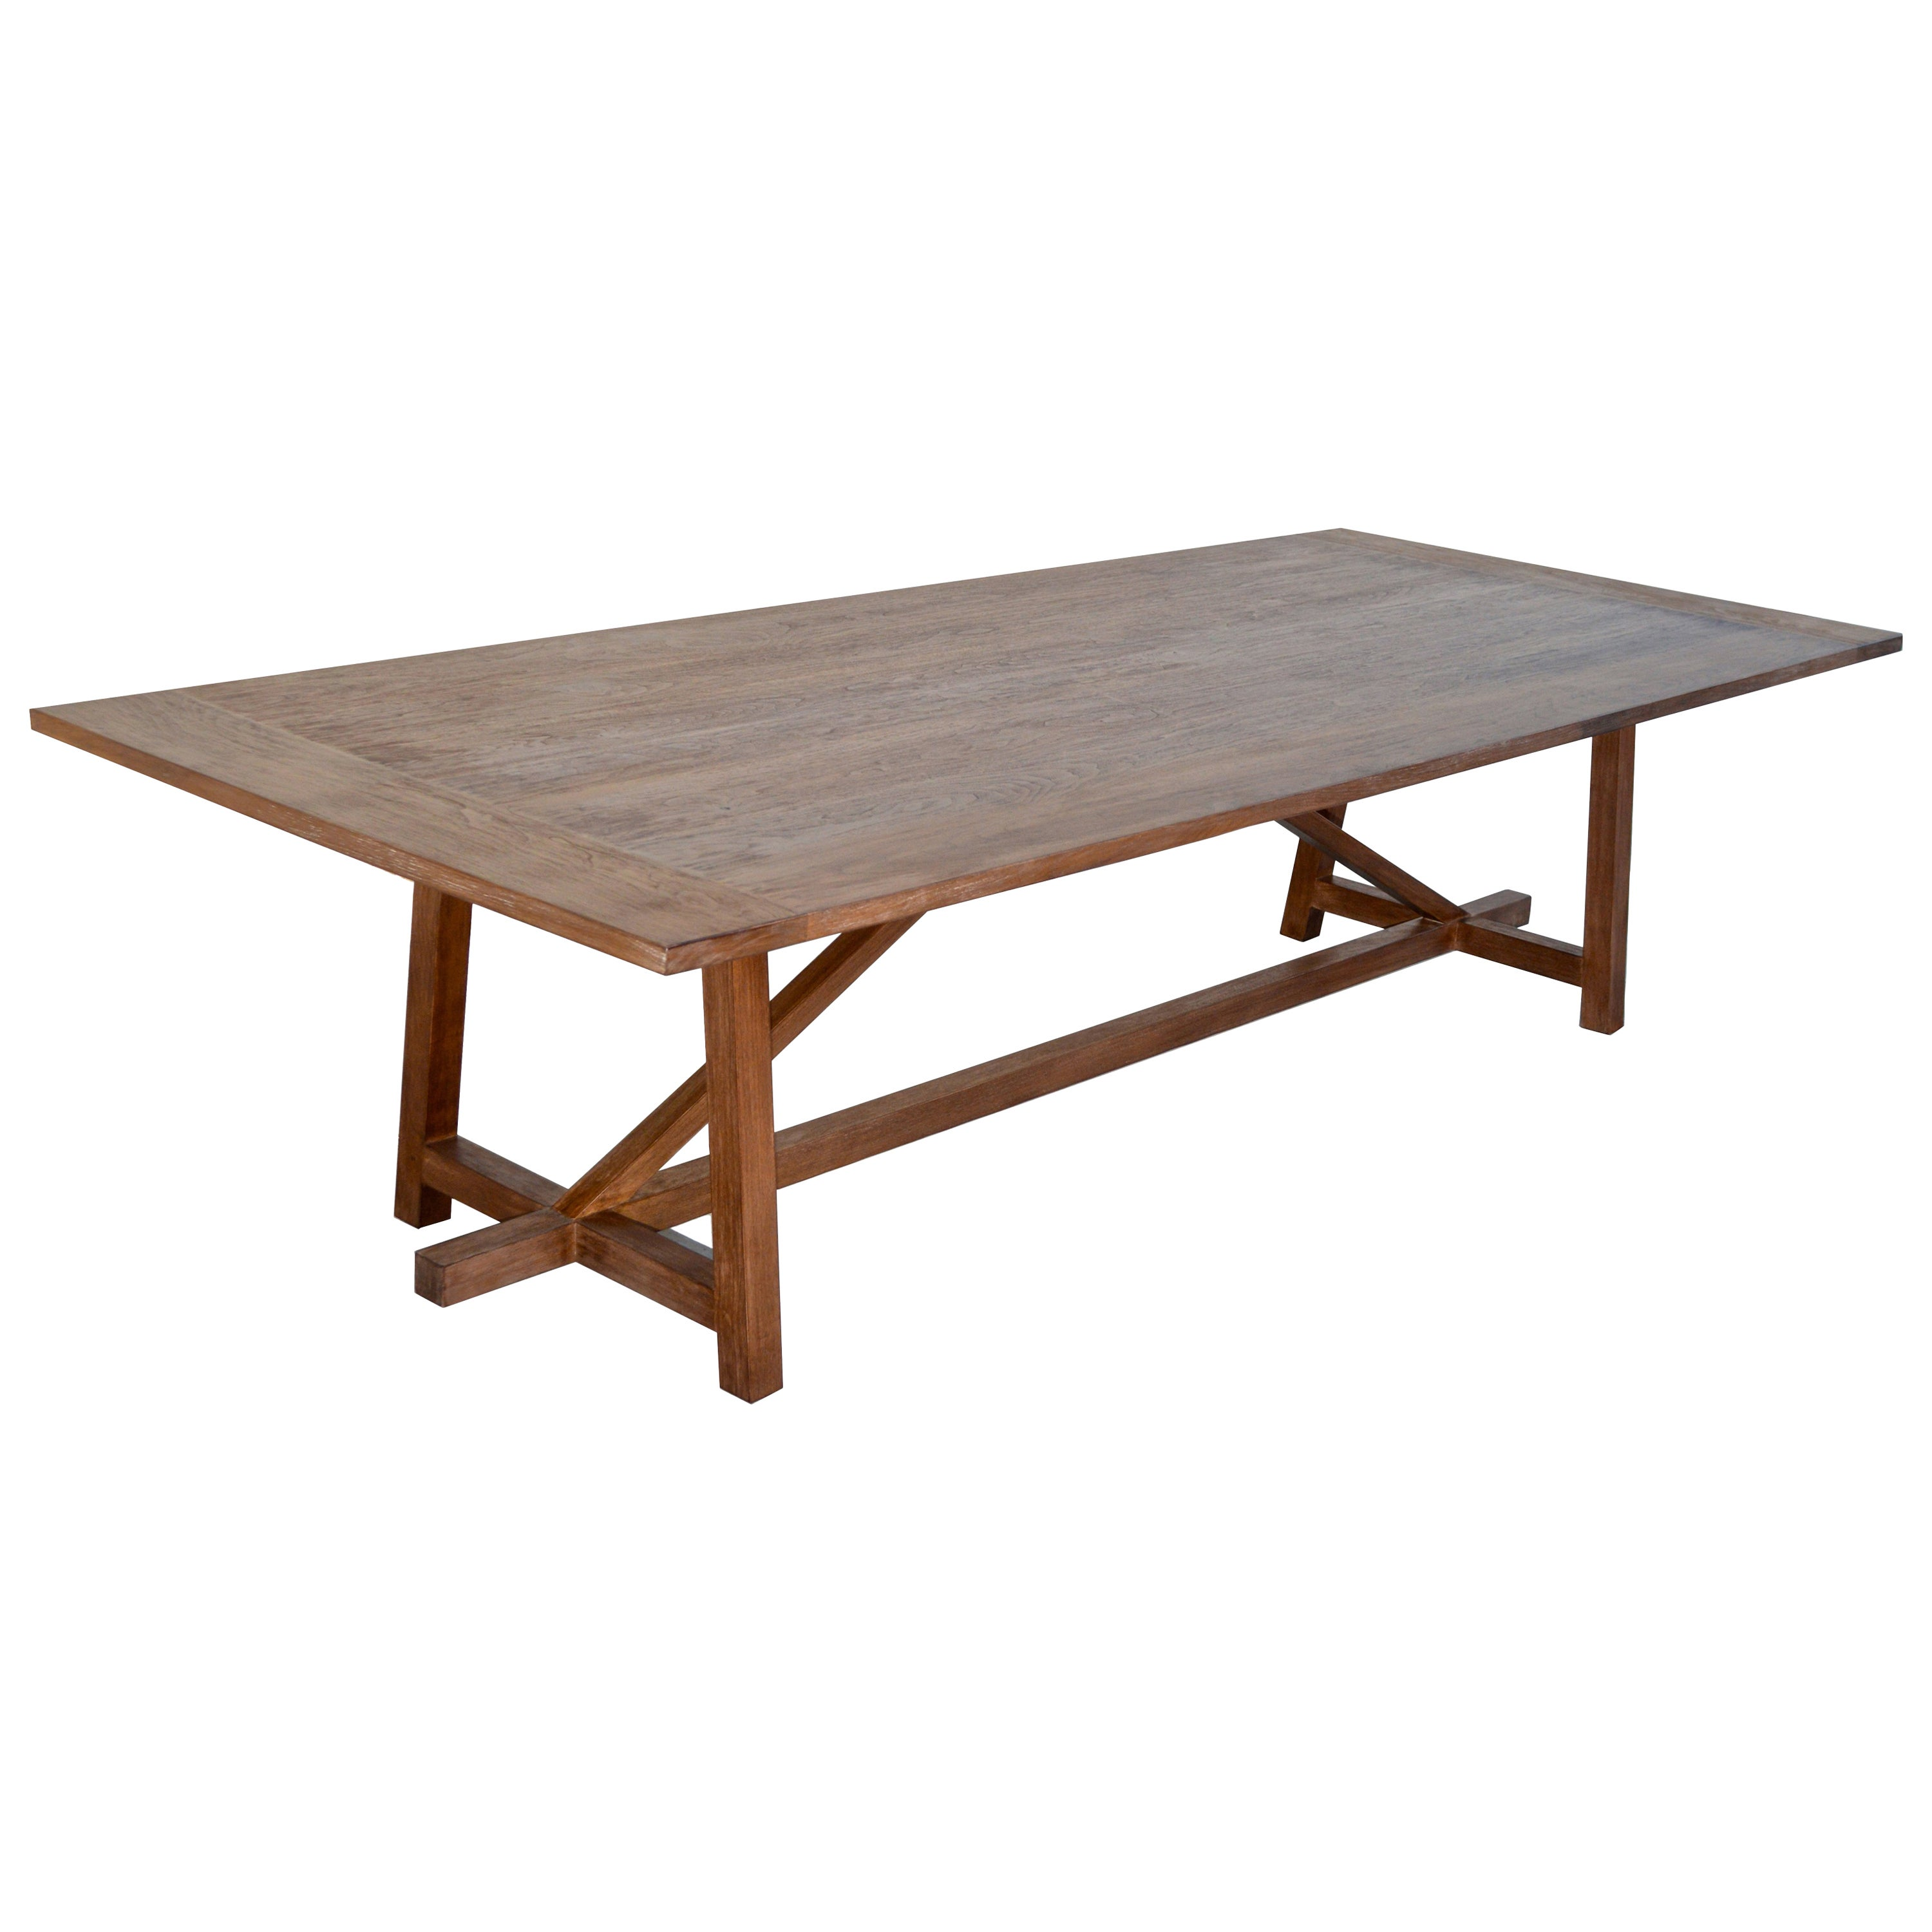 Custom Dining Table in Aged Walnut, Built to Order by Petersen Antiques